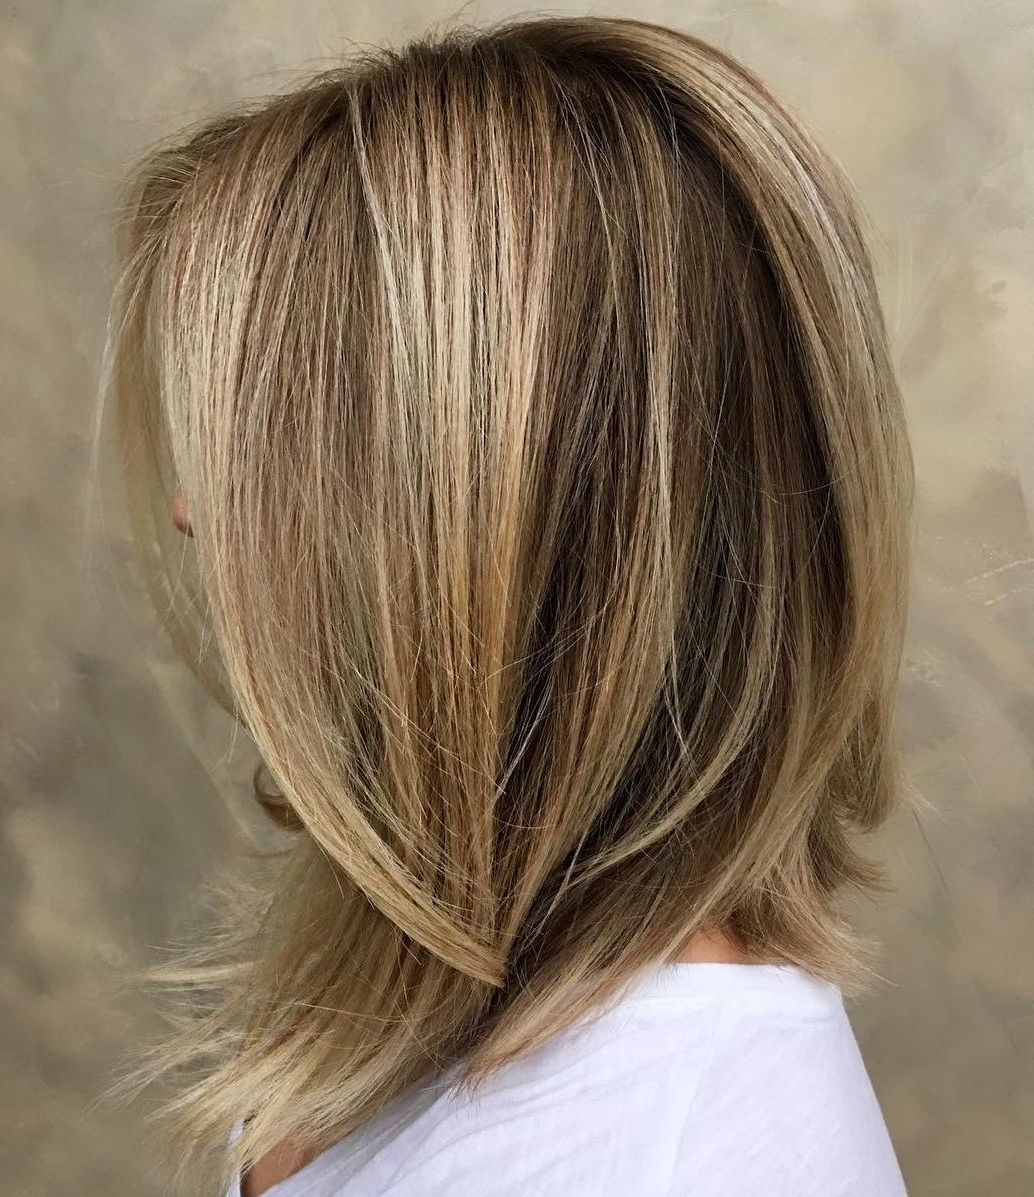 60 Inspiring Long Bob Hairstyles And Lob Haircuts 2018 Within Newest Messy Blonde Lob With Lowlights (View 4 of 20)